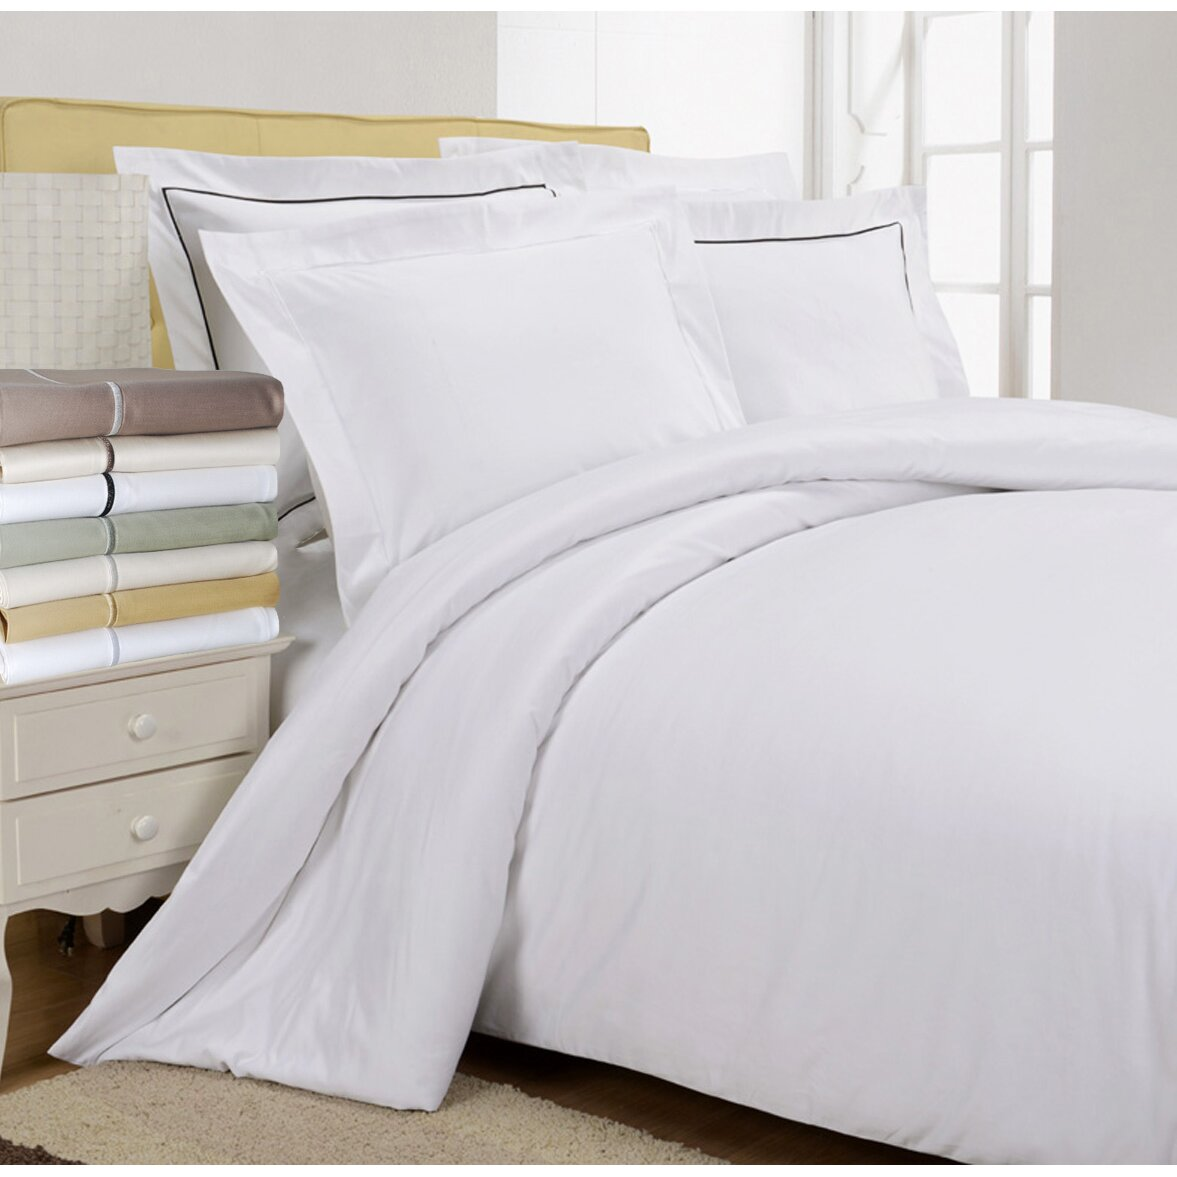 Simple Luxury 800 Thread Count Egyptian Quality Cotton